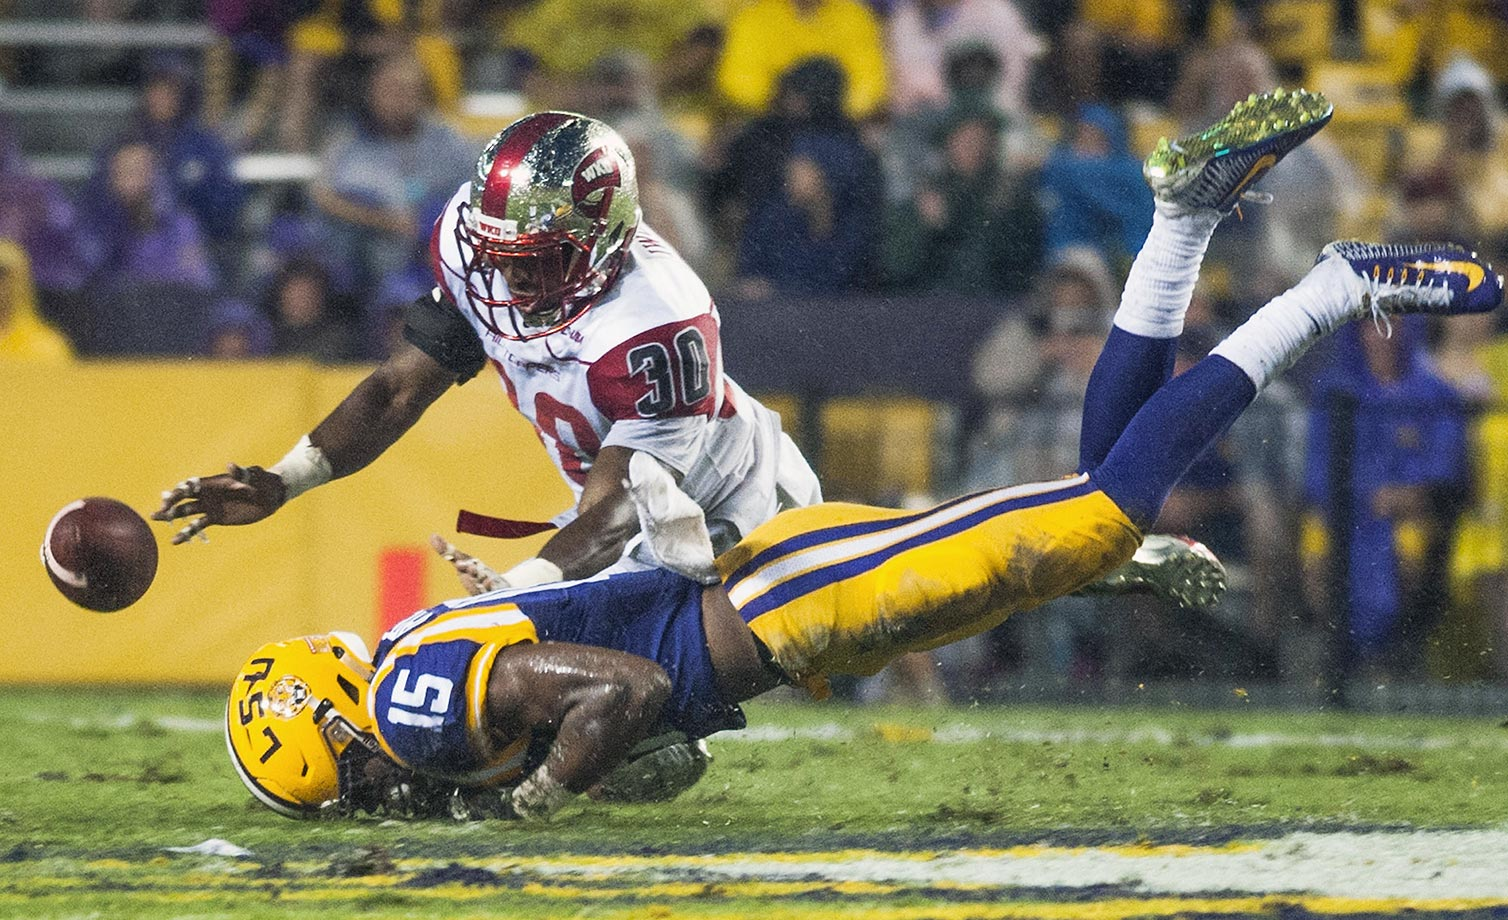 Prince Charles Iworah of Western Kentucky dives for a ball with Malachi Dupre of LSU.  The pass fell incomplete.